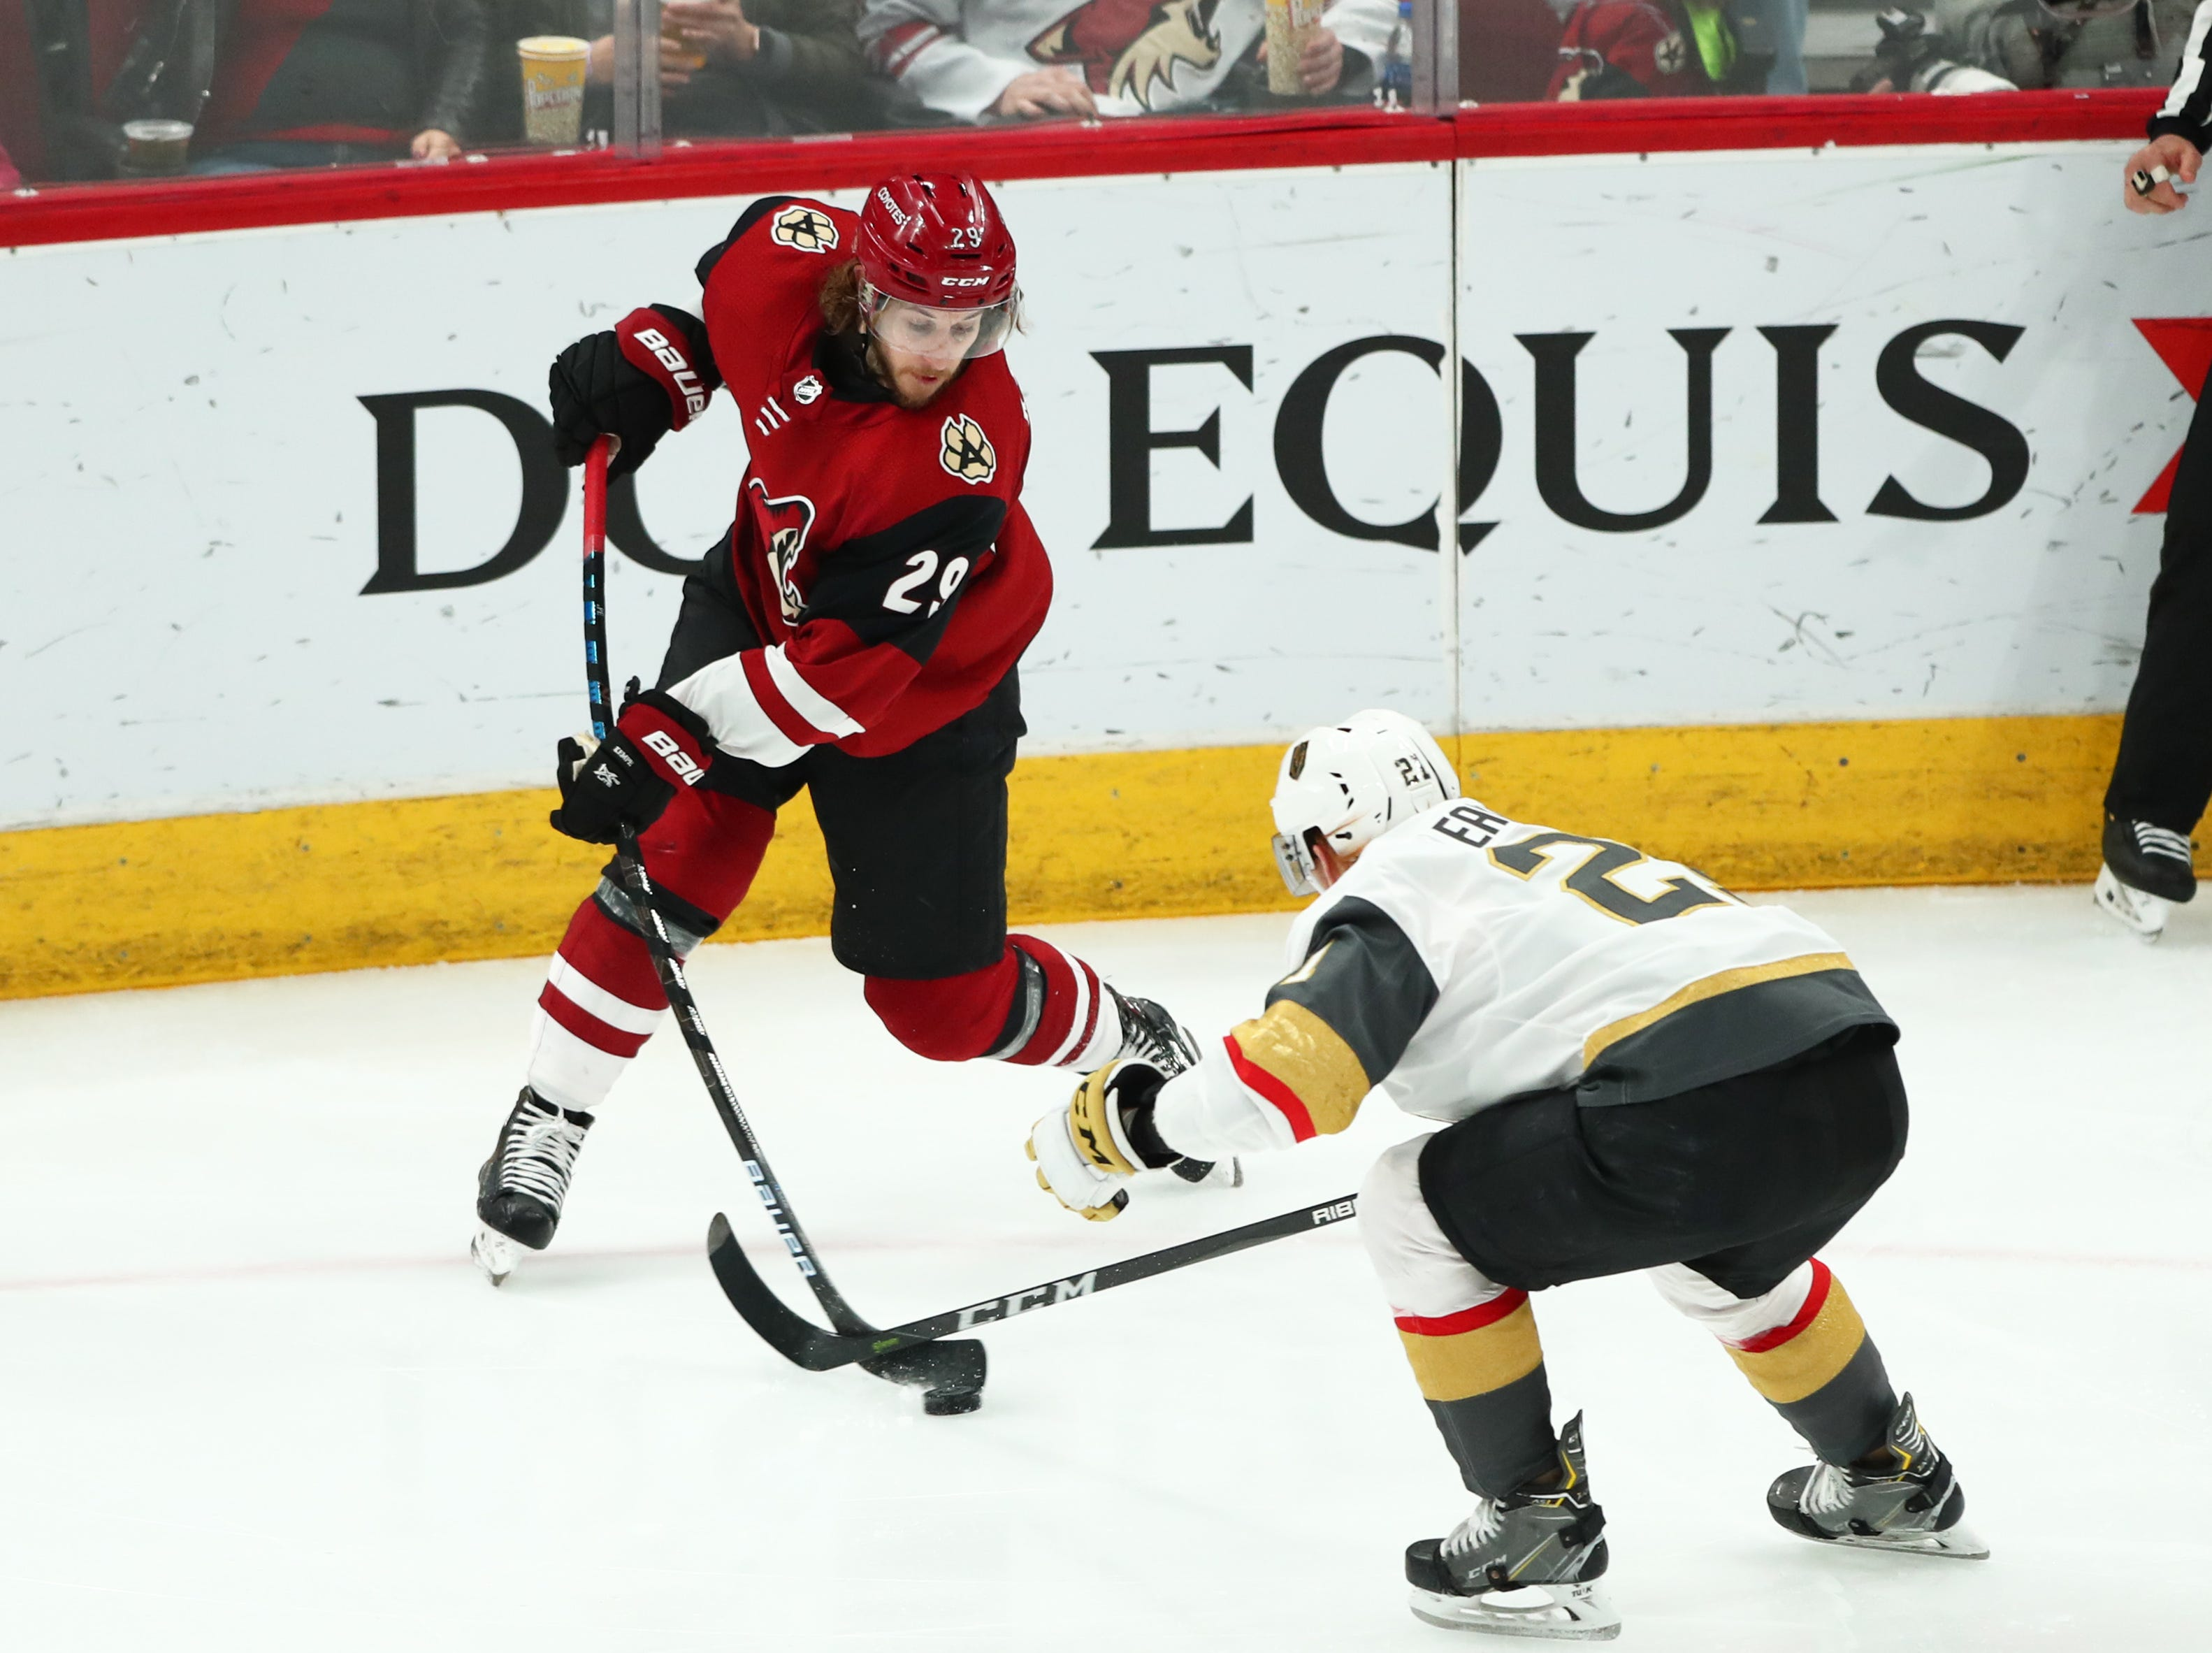 Dec 30, 2018; Glendale, AZ, USA; Arizona Coyotes right wing Mario Kempe (29) moves the puck against Vegas Golden Knights center Cody Eakin (21) in the second period at Gila River Arena. Mandatory Credit: Mark J. Rebilas-USA TODAY Sports